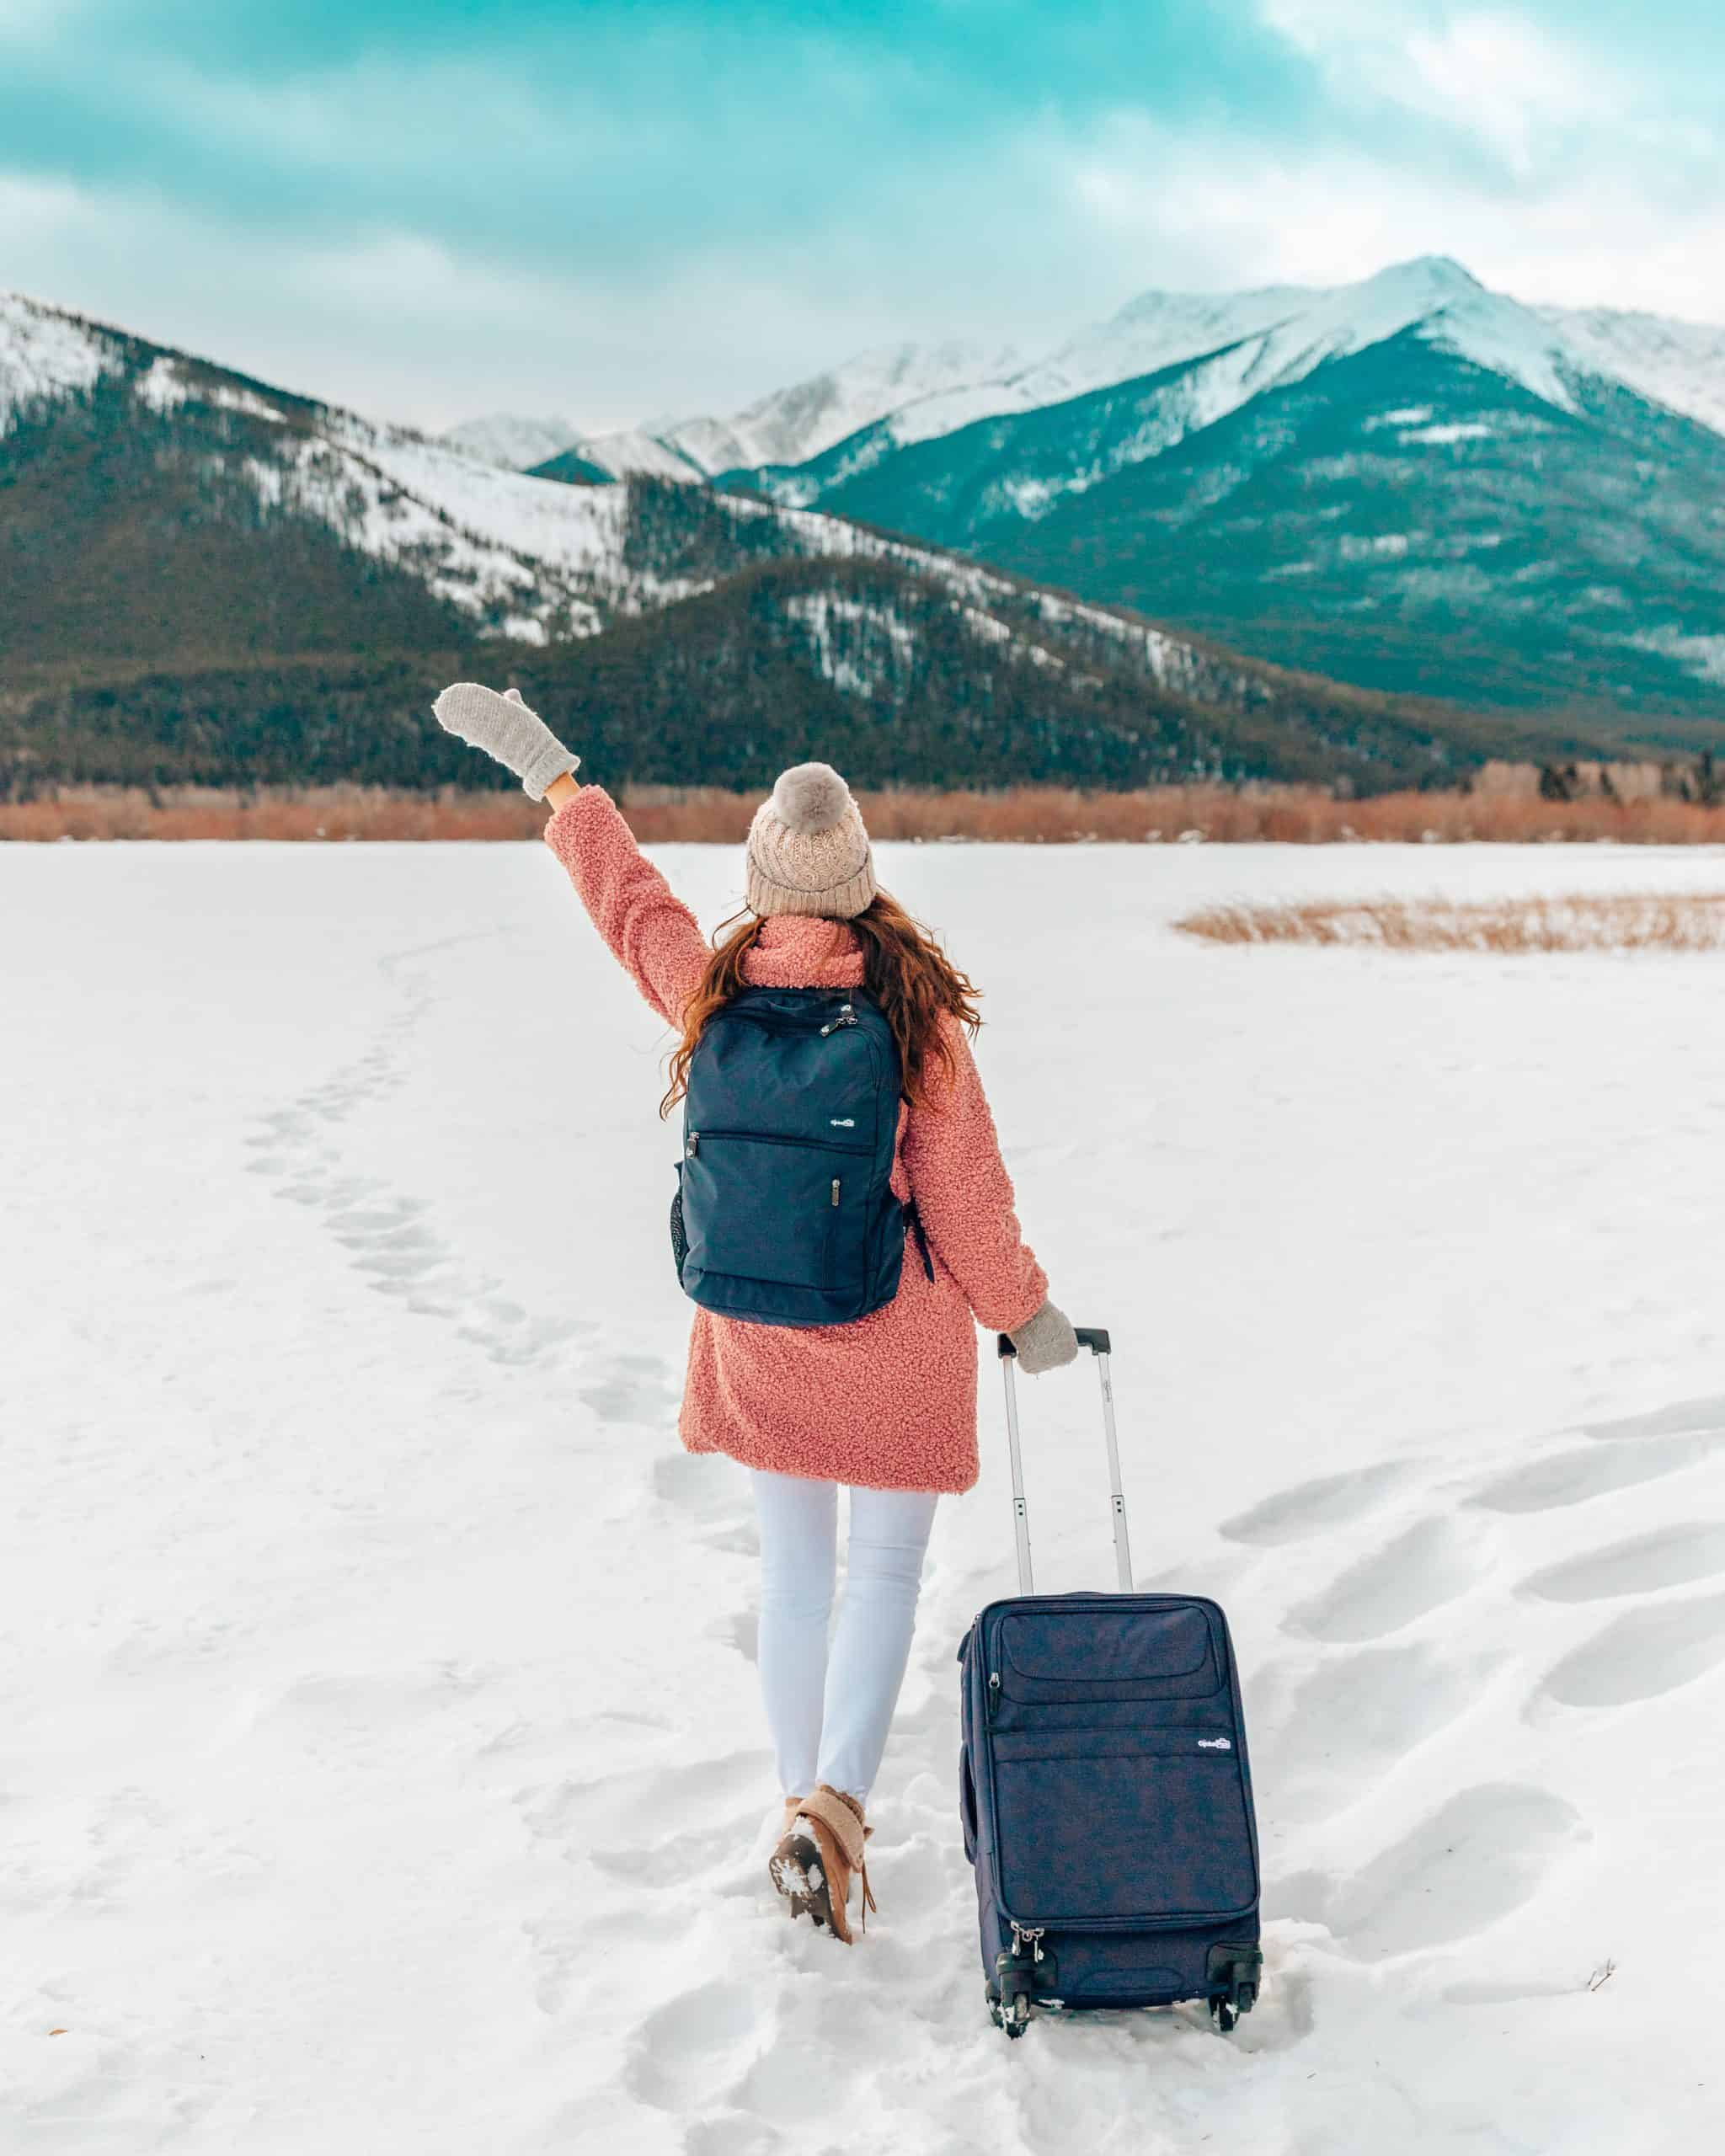 Girl standing on frozen lake with backpack and suitcase - The Next Trip